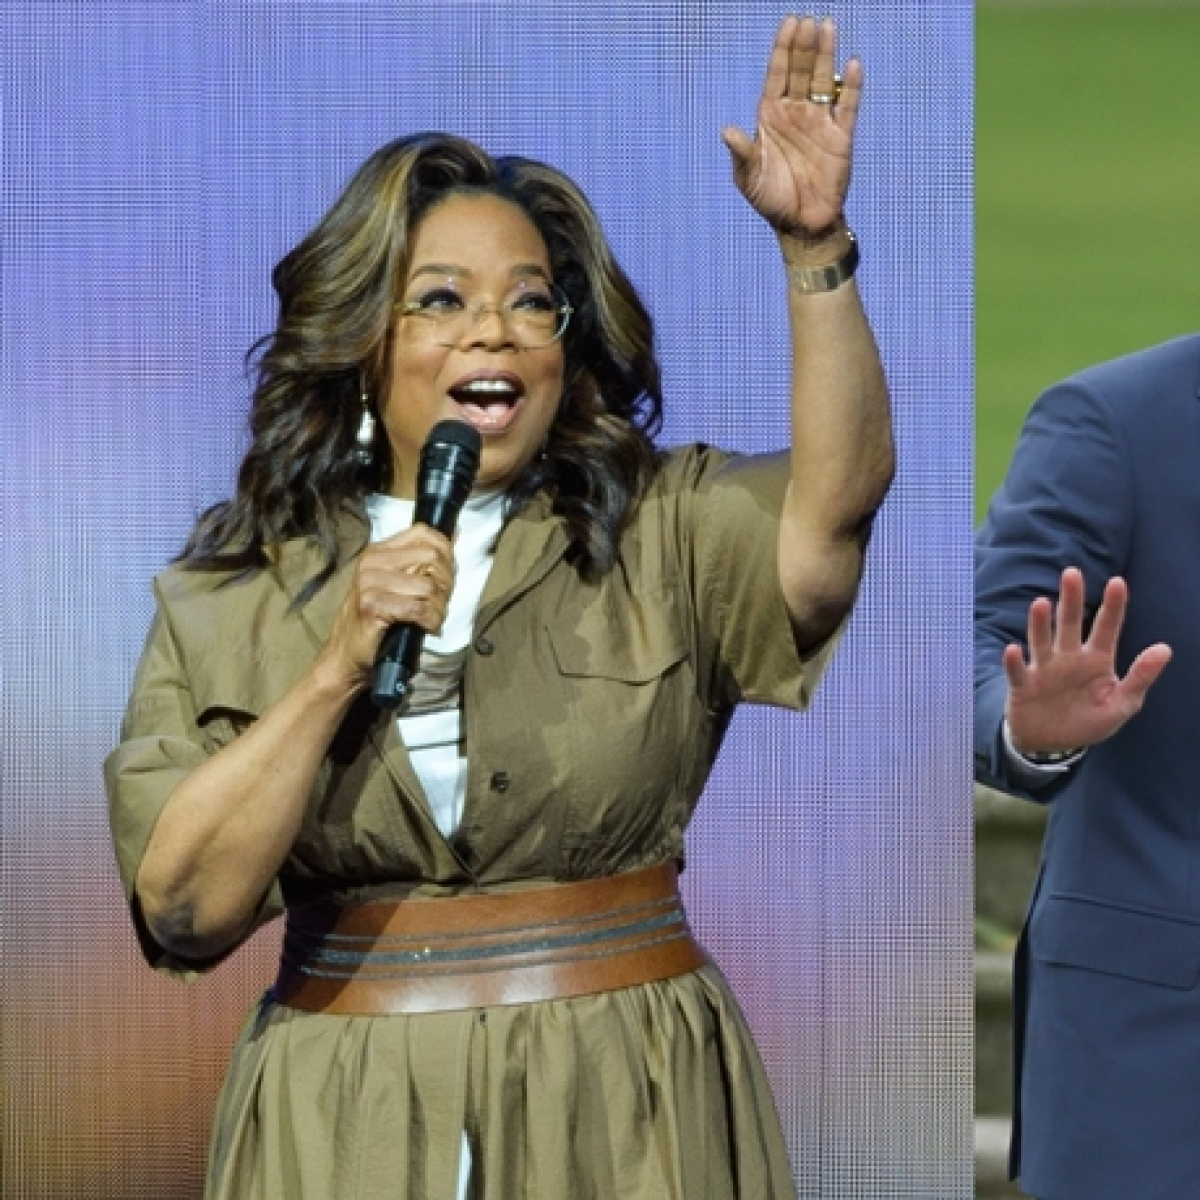 Did Oprah Winfrey advise Prince Harry and Meghan Markle on royal exit?